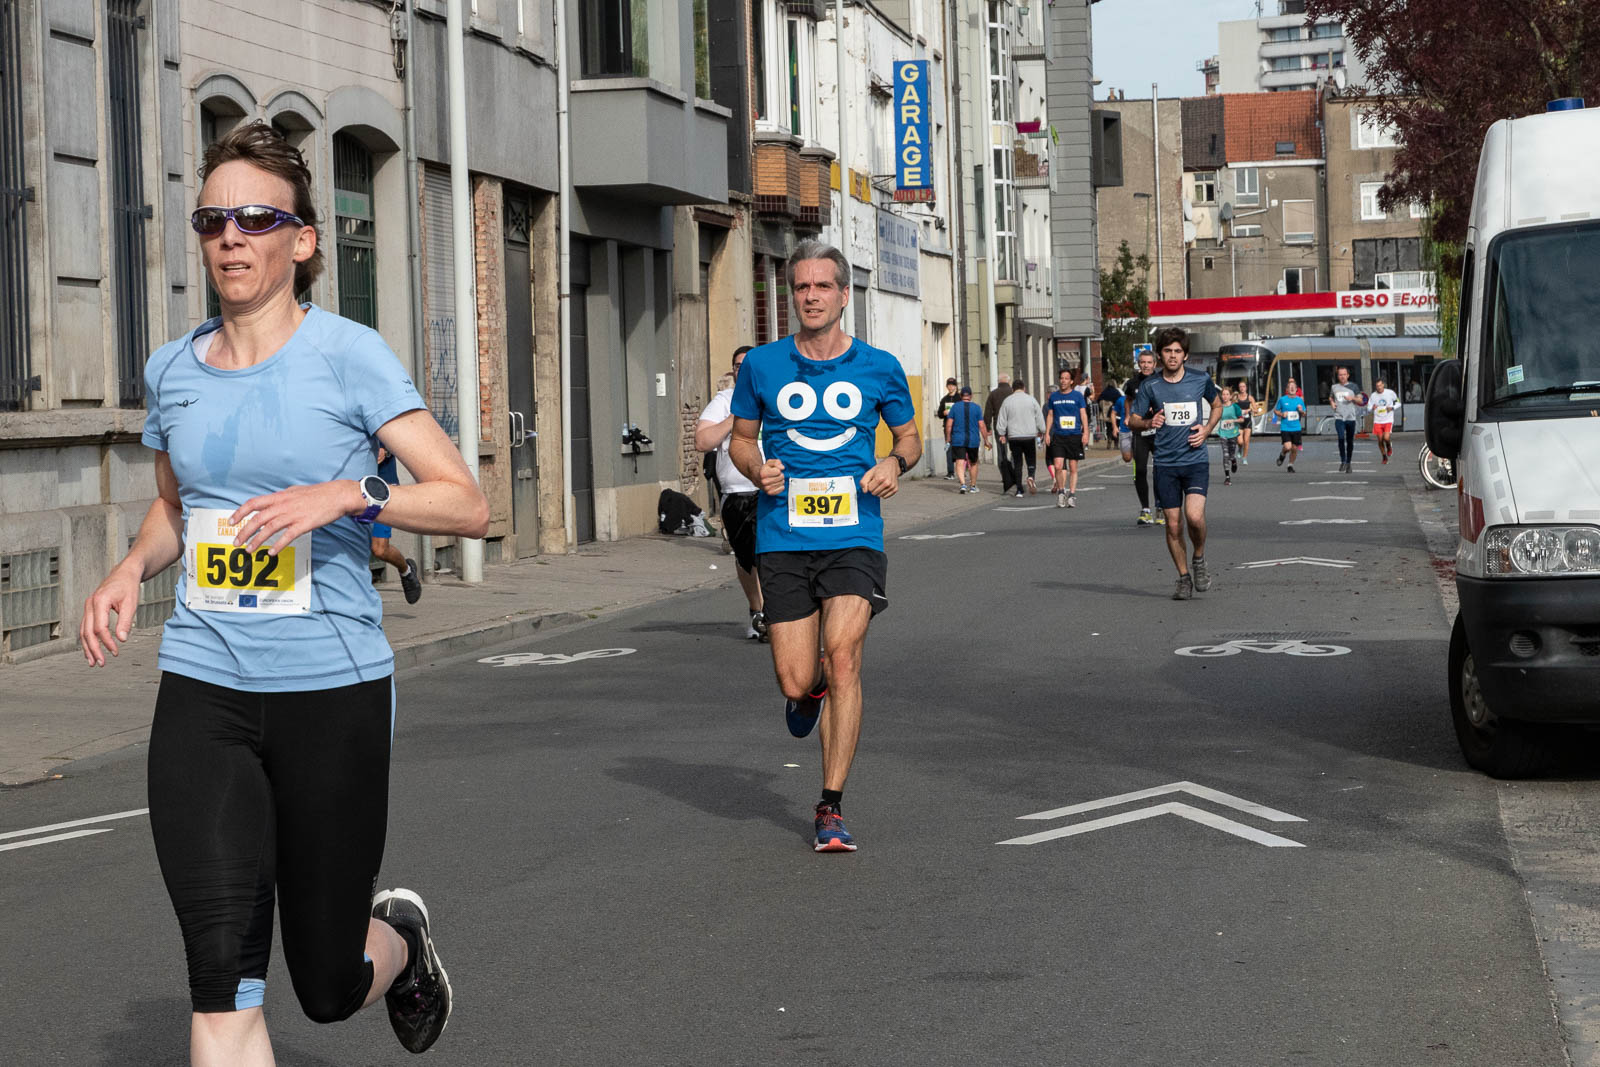 PIC_EVENT_20181020_BRUSSELS-CANAL-RUN_NIKON_014.jpg